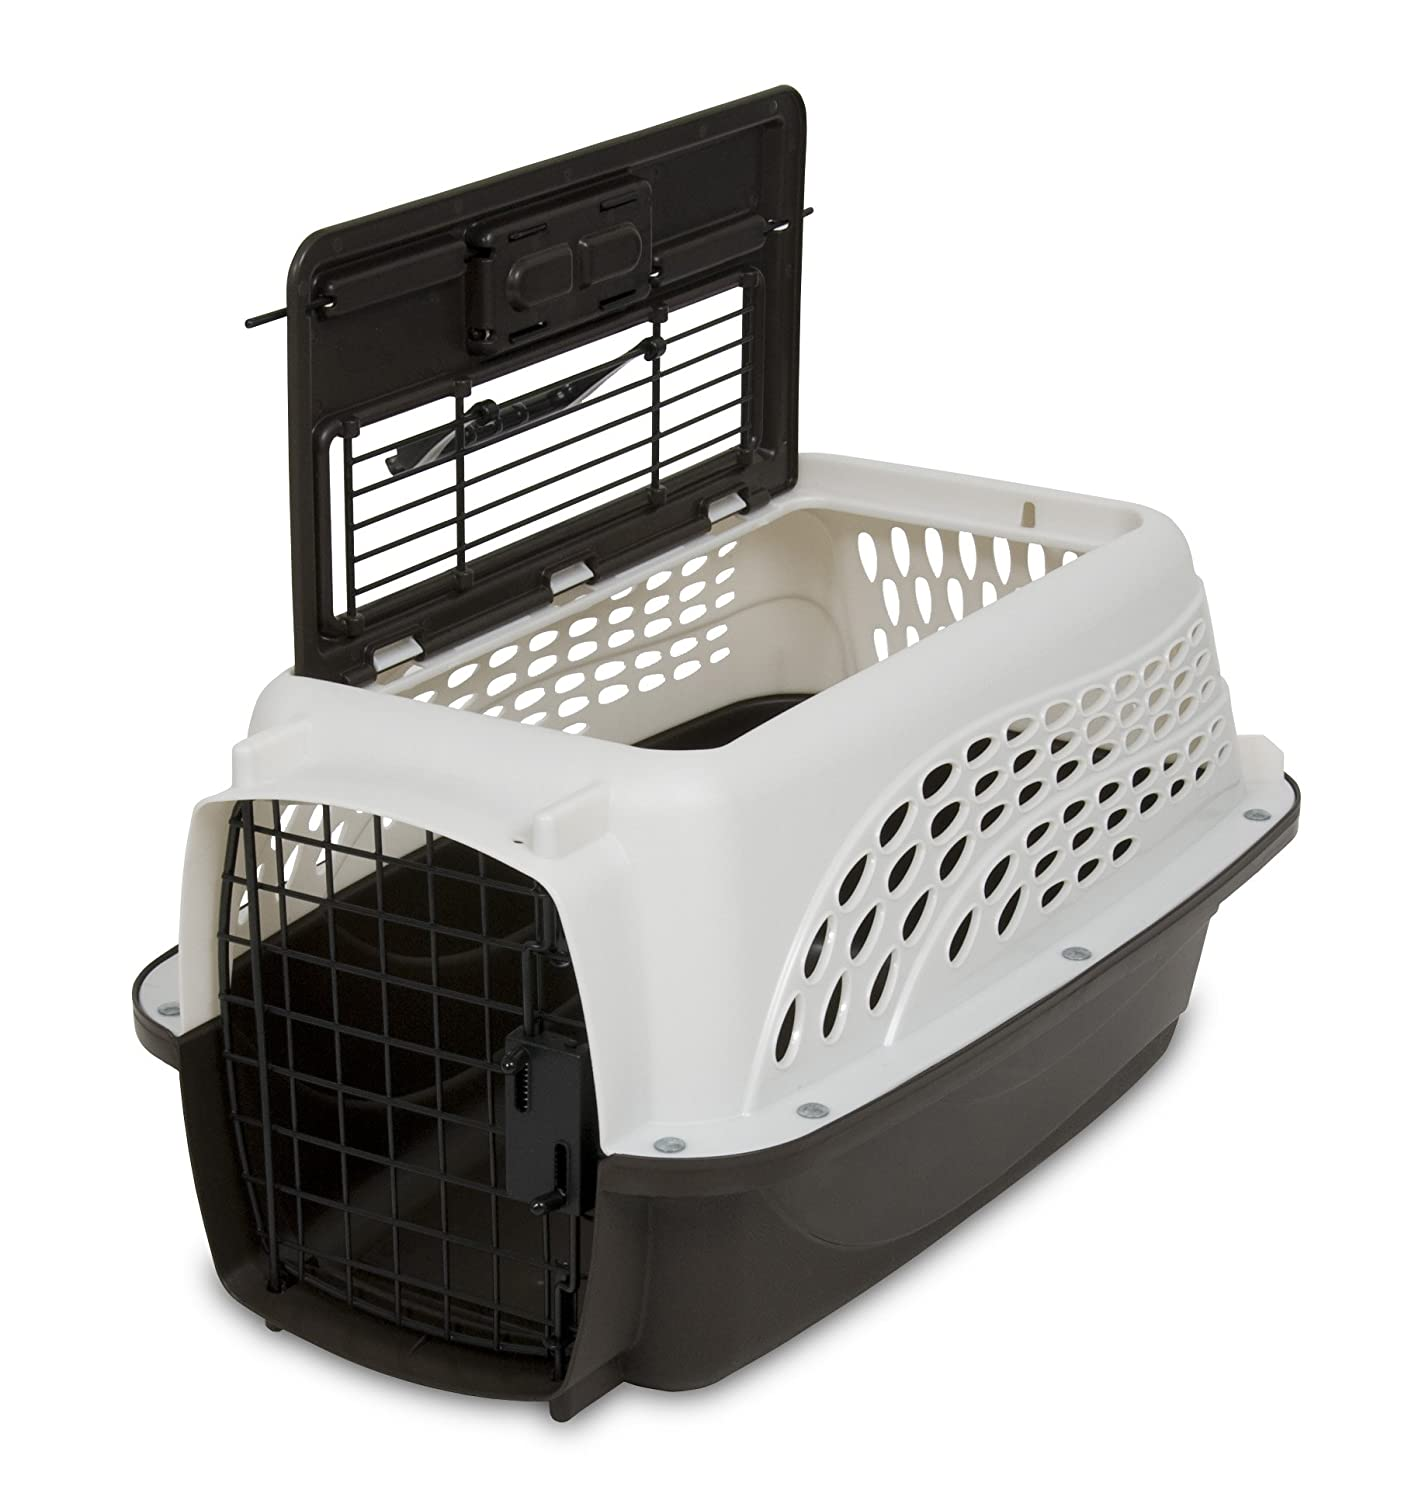 Petmate Two Door Top Load Kennel made of steel and plastic